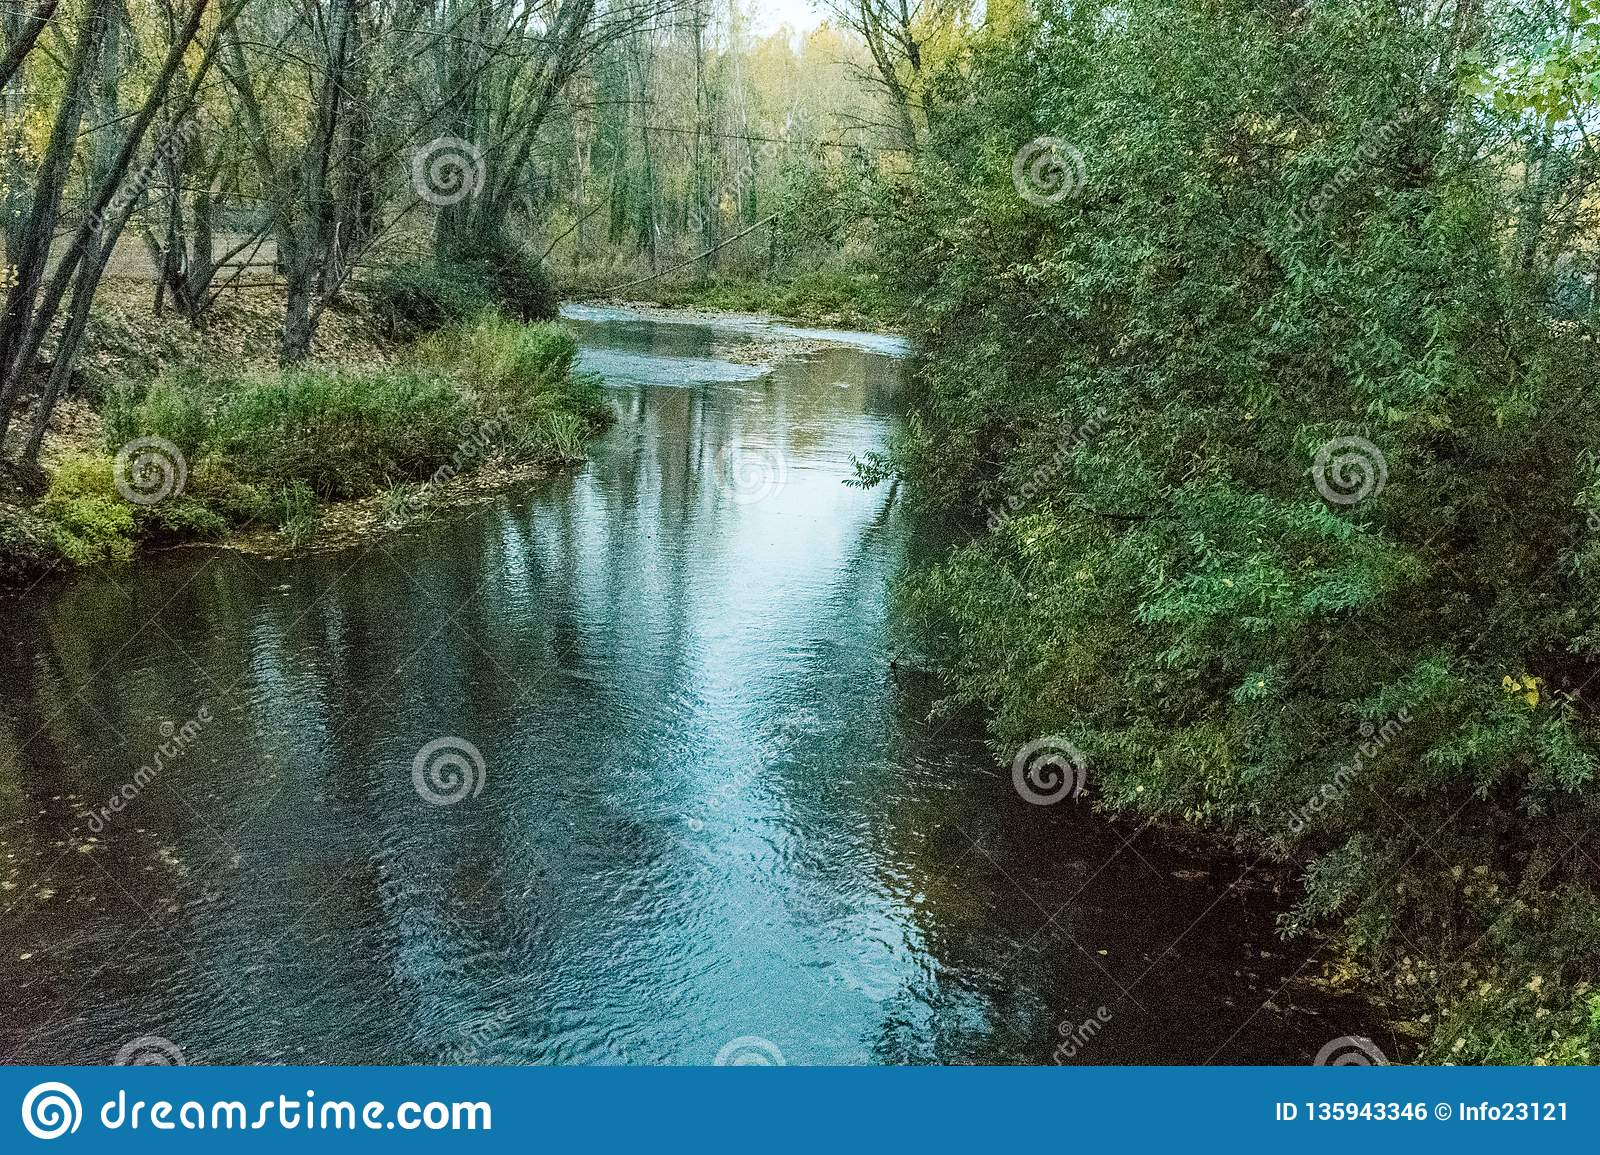 River when passing through town with leafy margins